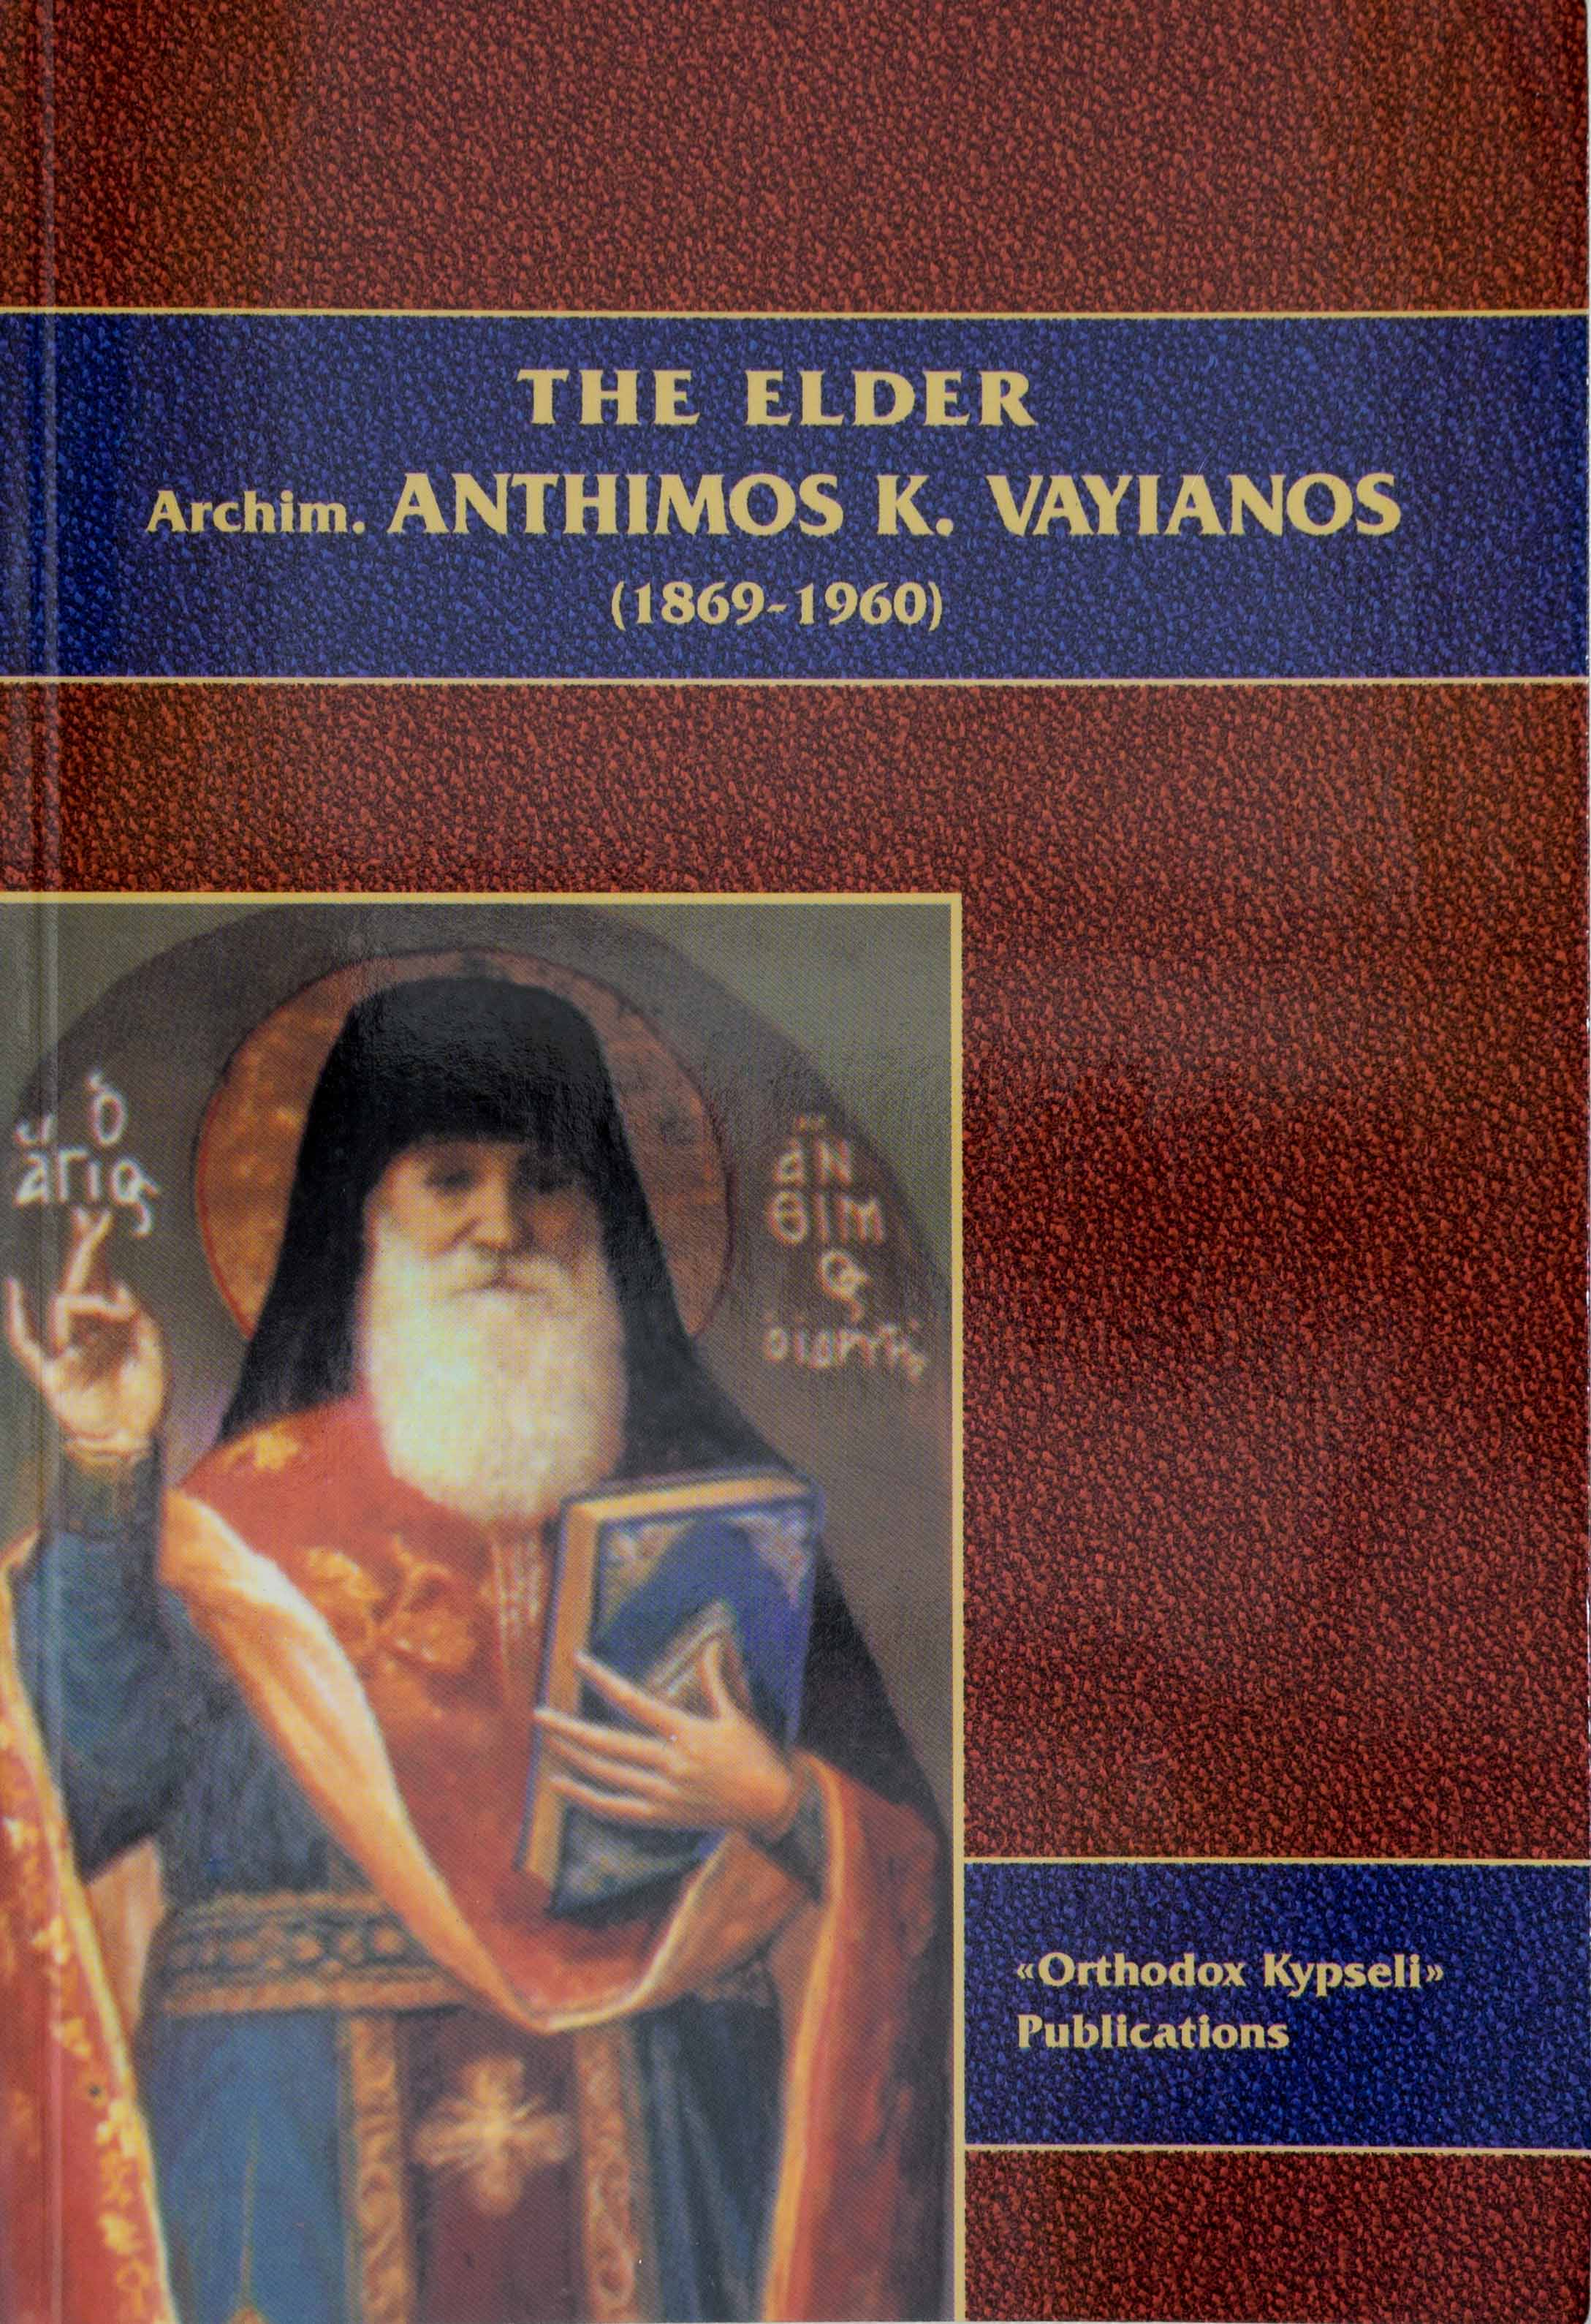 The Elder Archim. Anthimos K. Vayianos (1869-1960)